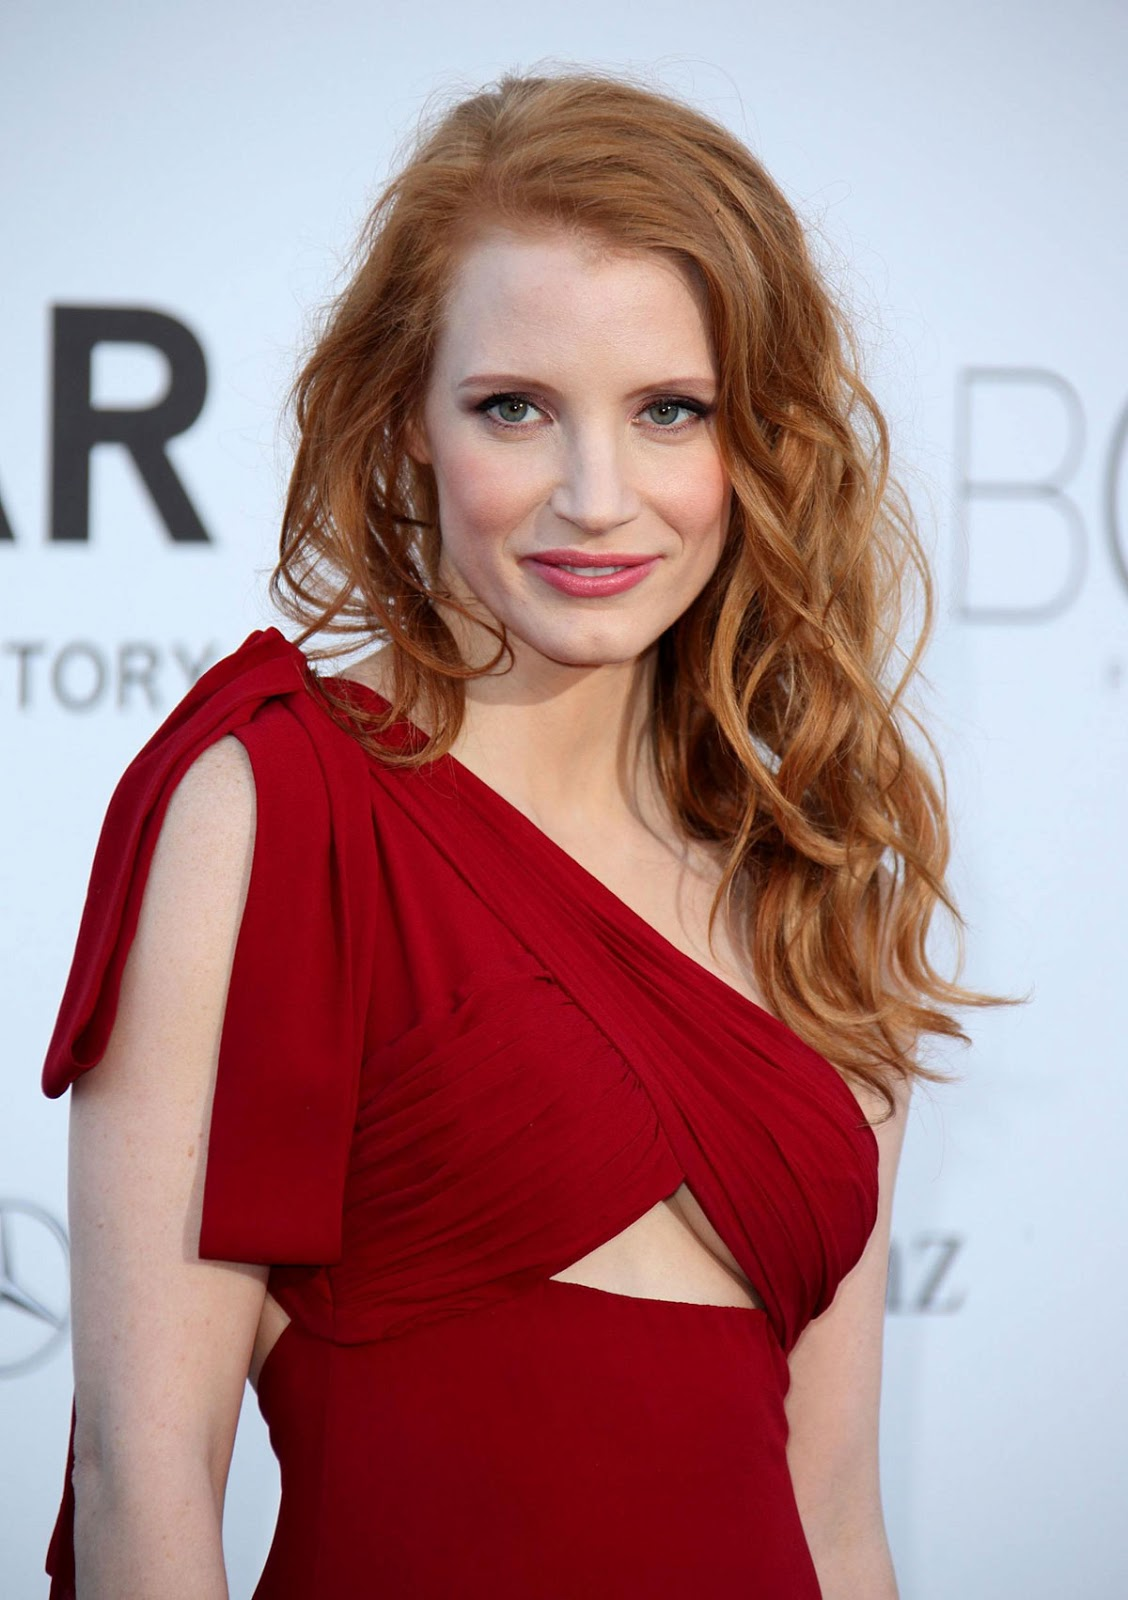 JESSICA-CHASTAIN-at-amfAR's-20th-Cinema-Against-AIDS-Event-in-Cannes-3.jpg (1128×1600)